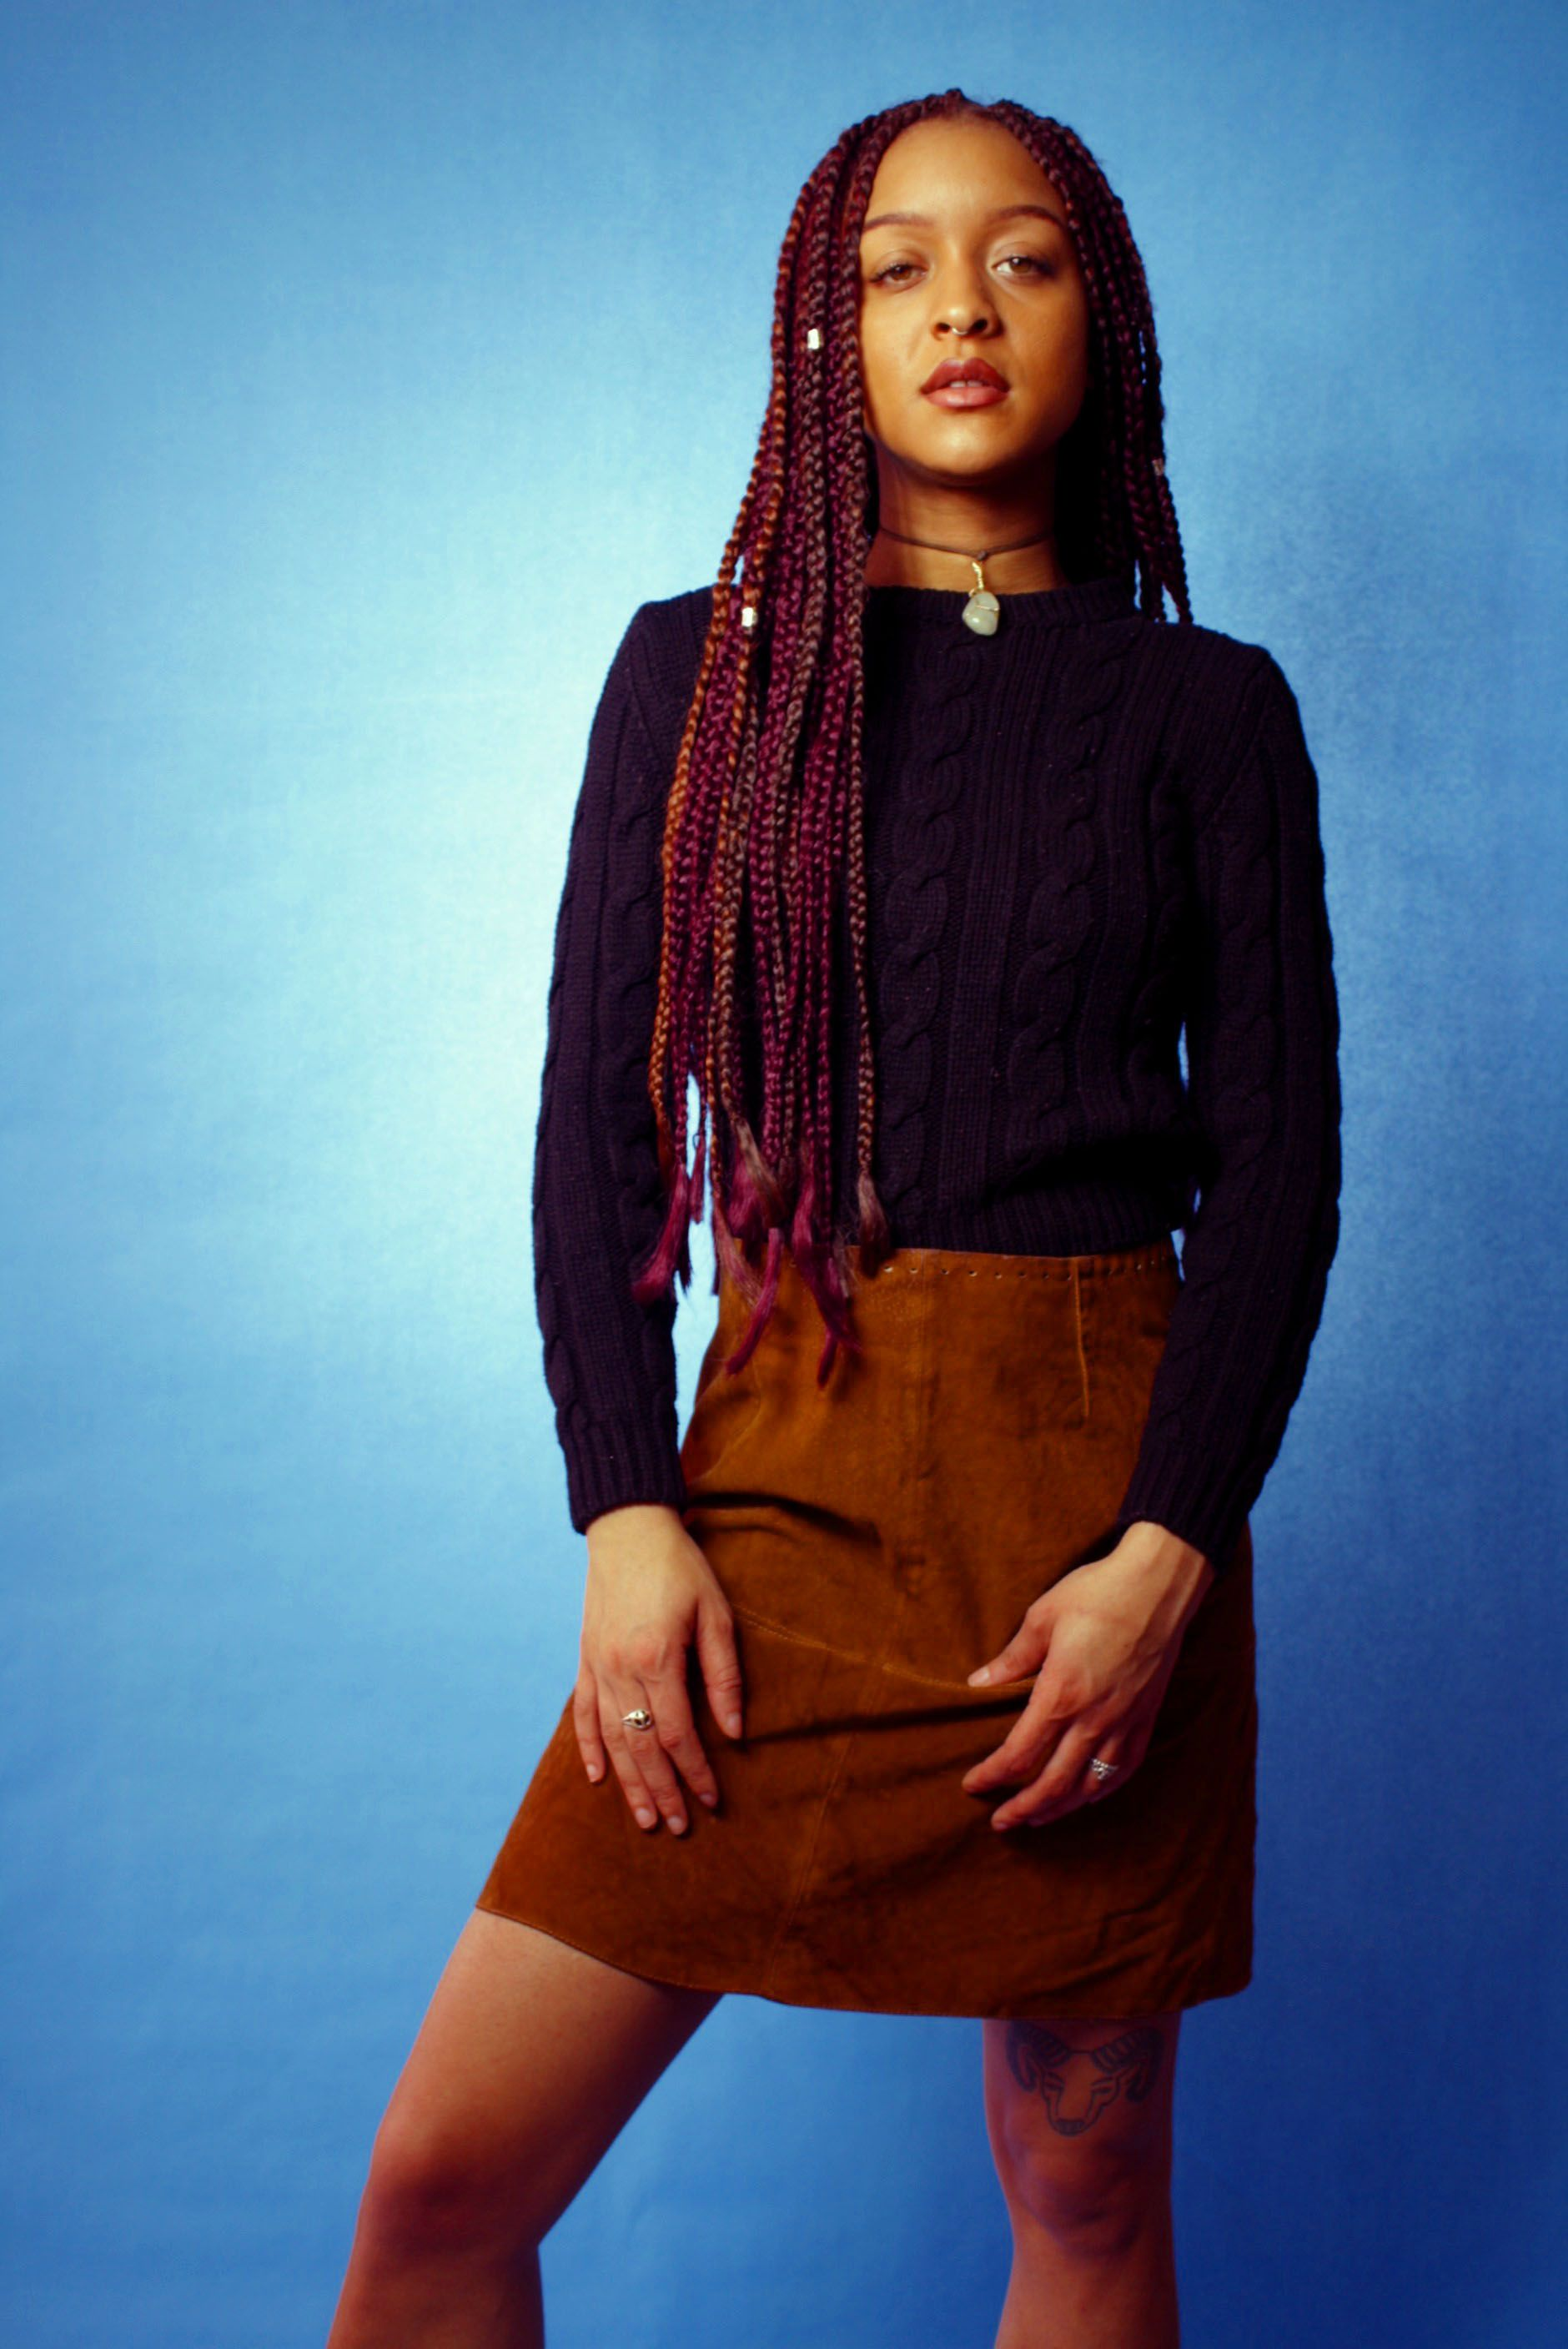 Patty naturalhair boxbraids photography editorial fashion